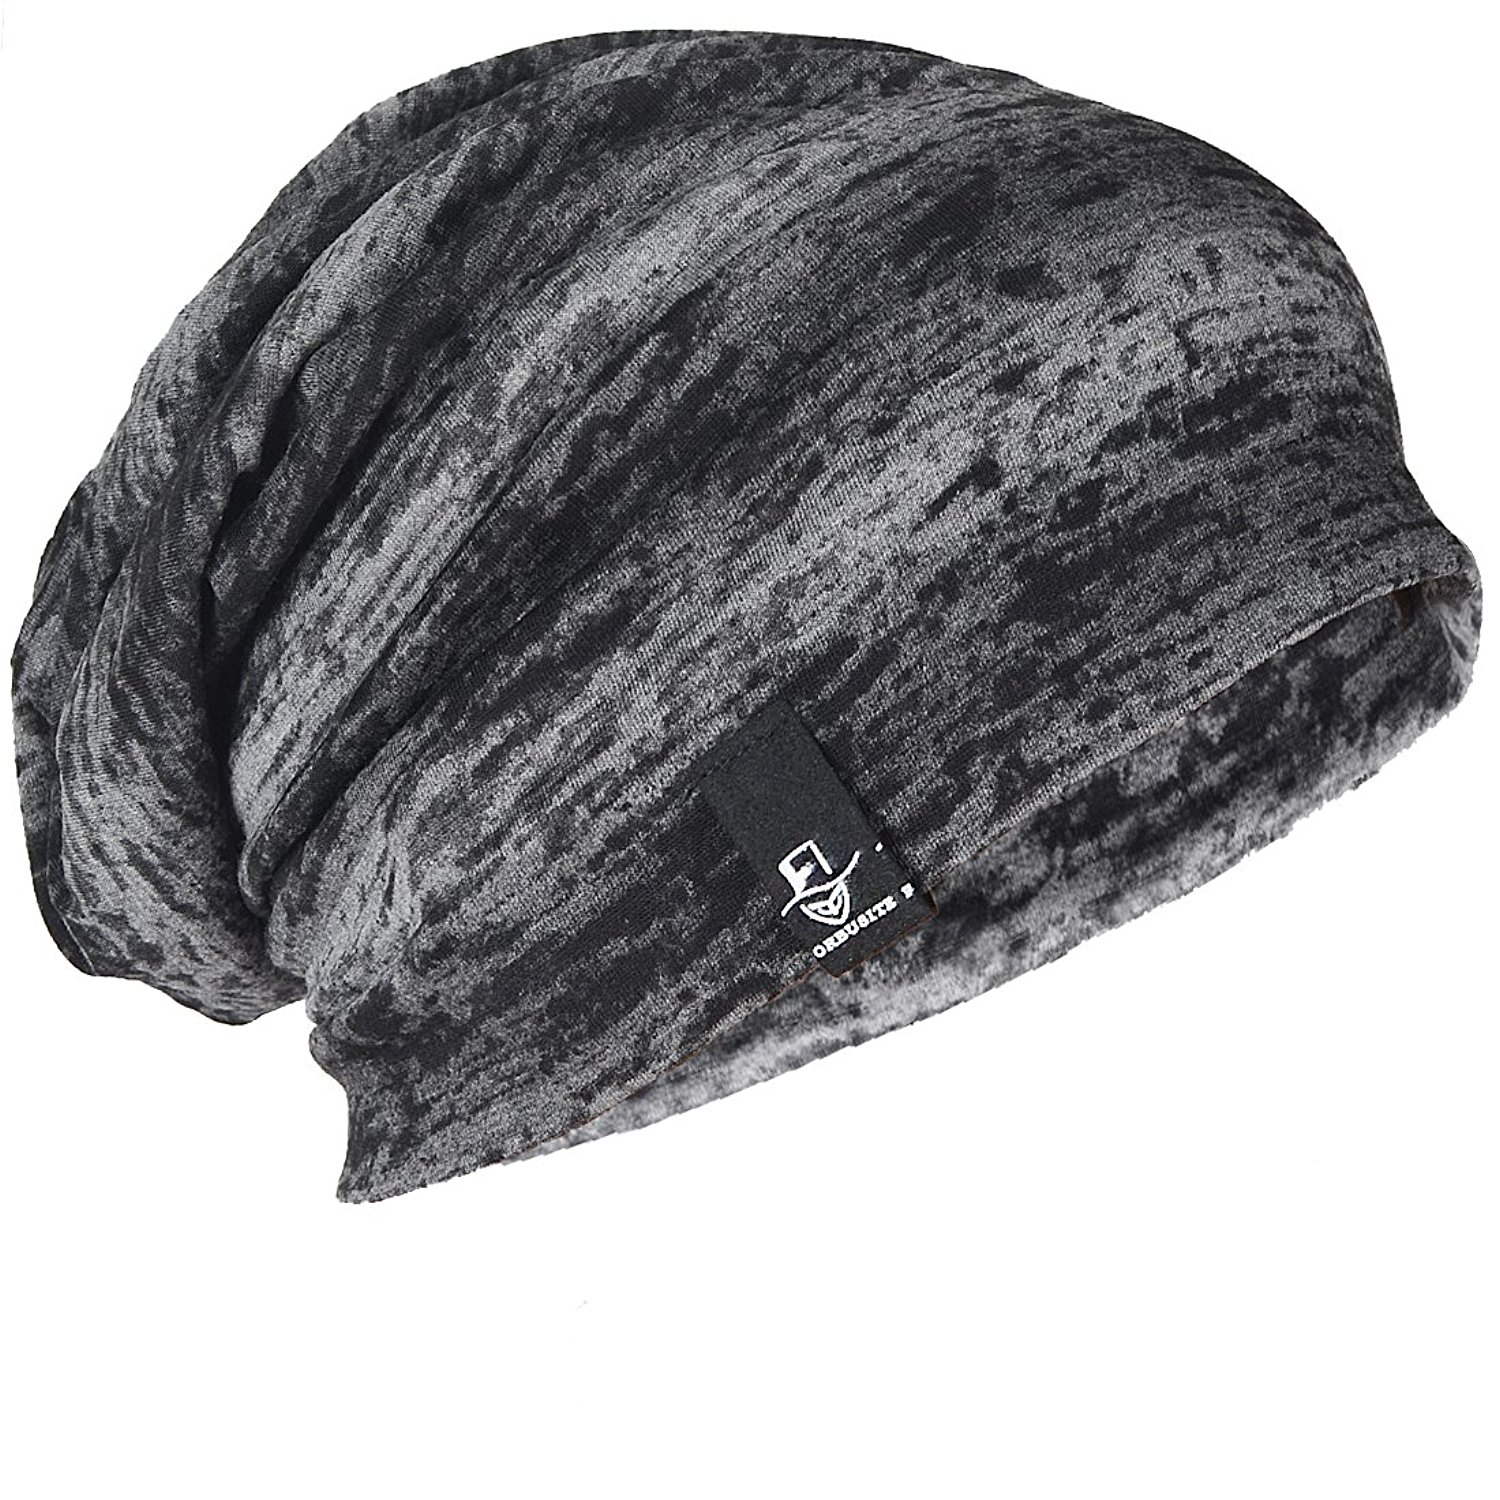 308224a4810b2 Get Quotations · FORBUSITE Mens Slouchy Oversized Thin Beanie Cap for Summer  B081